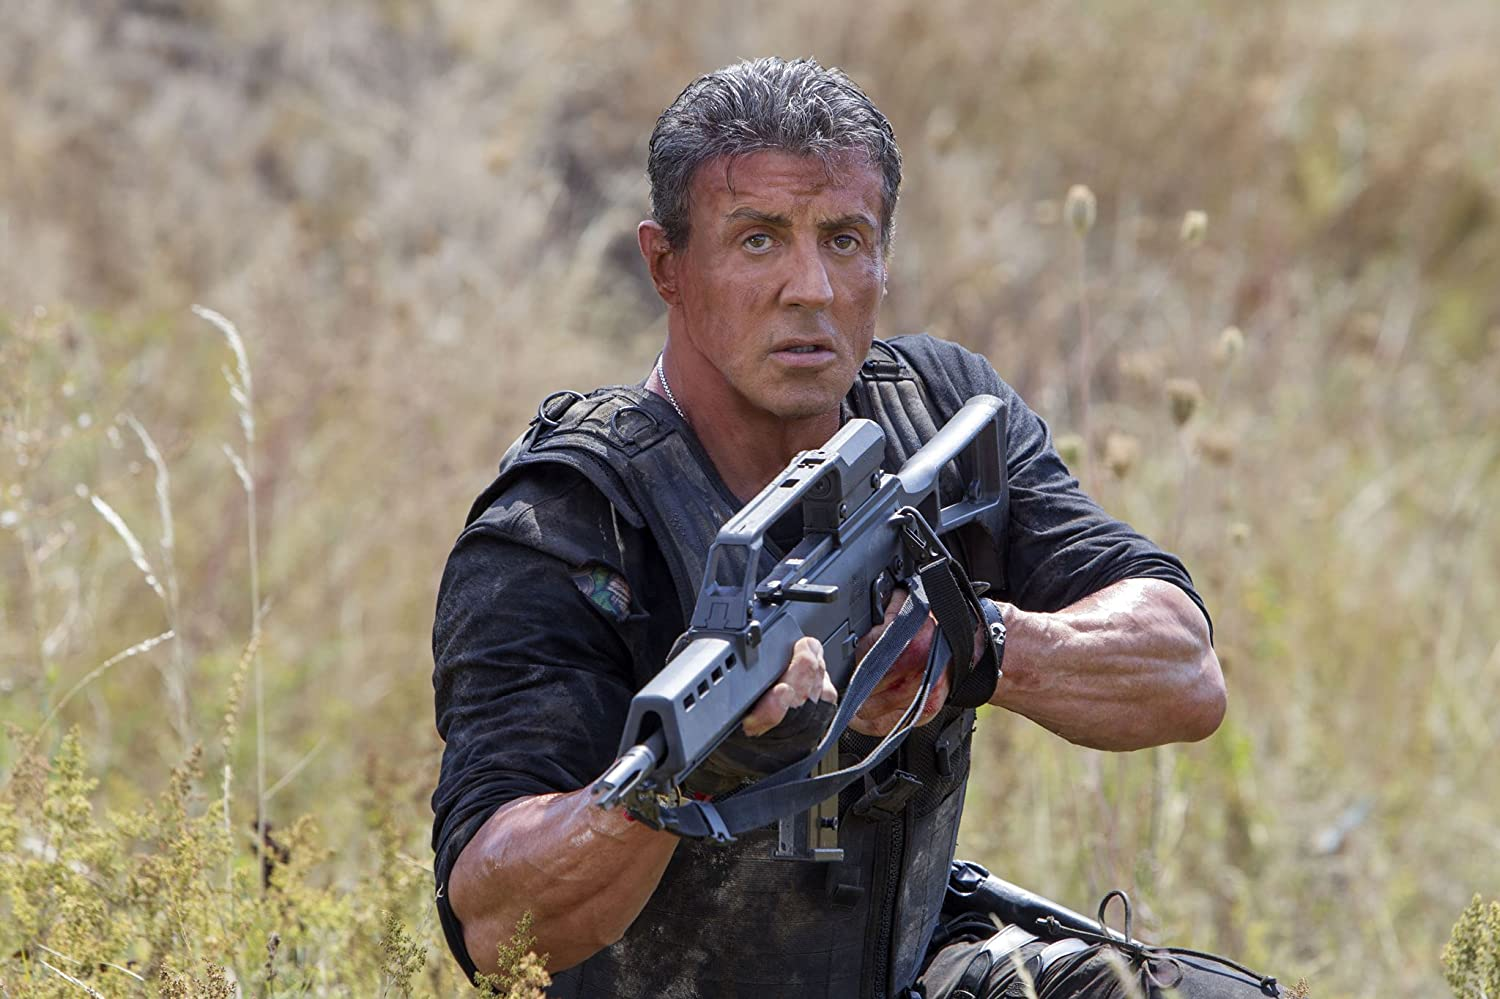 Sylvester Stallone in The Expendables 3 (2014)